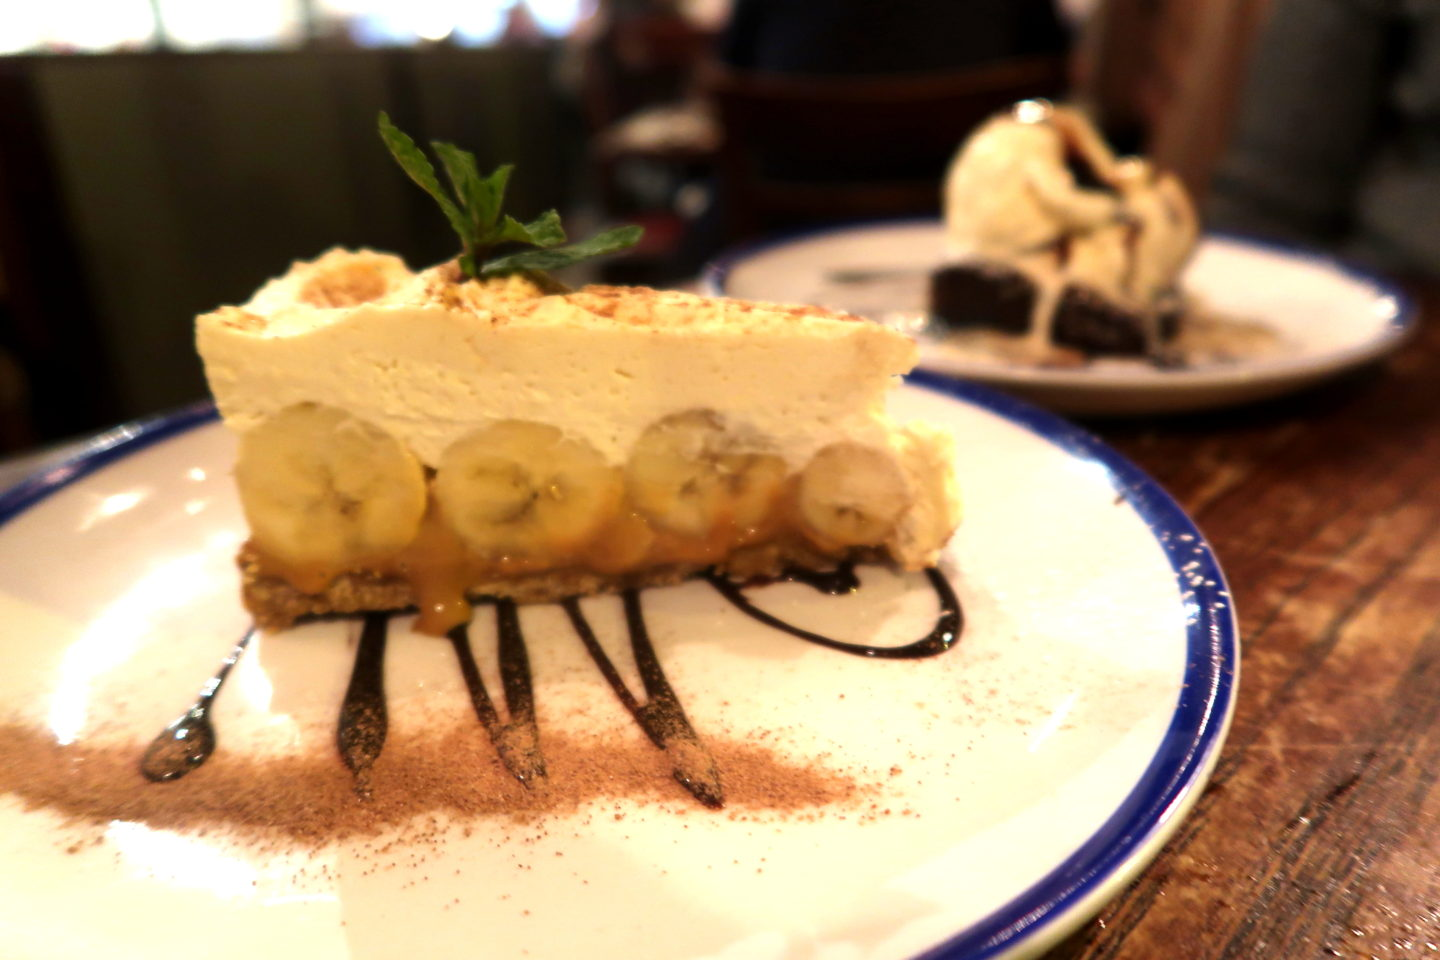 Review of The Tommyfield Banoffee Pie